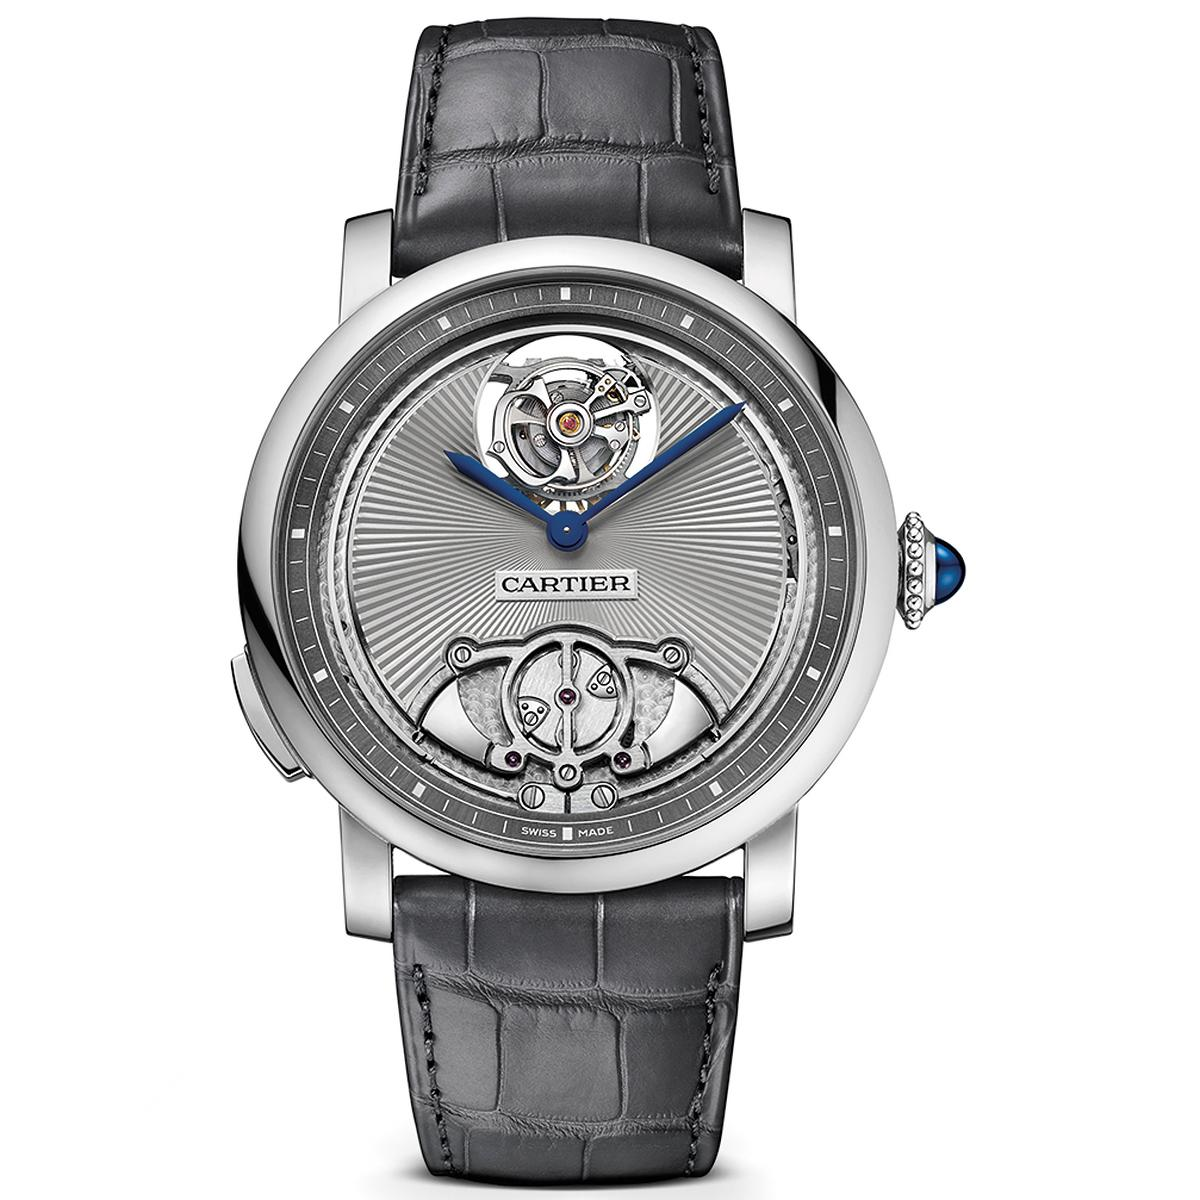 Cartier Rotonde de Cartier minute repeater flying tourbillon